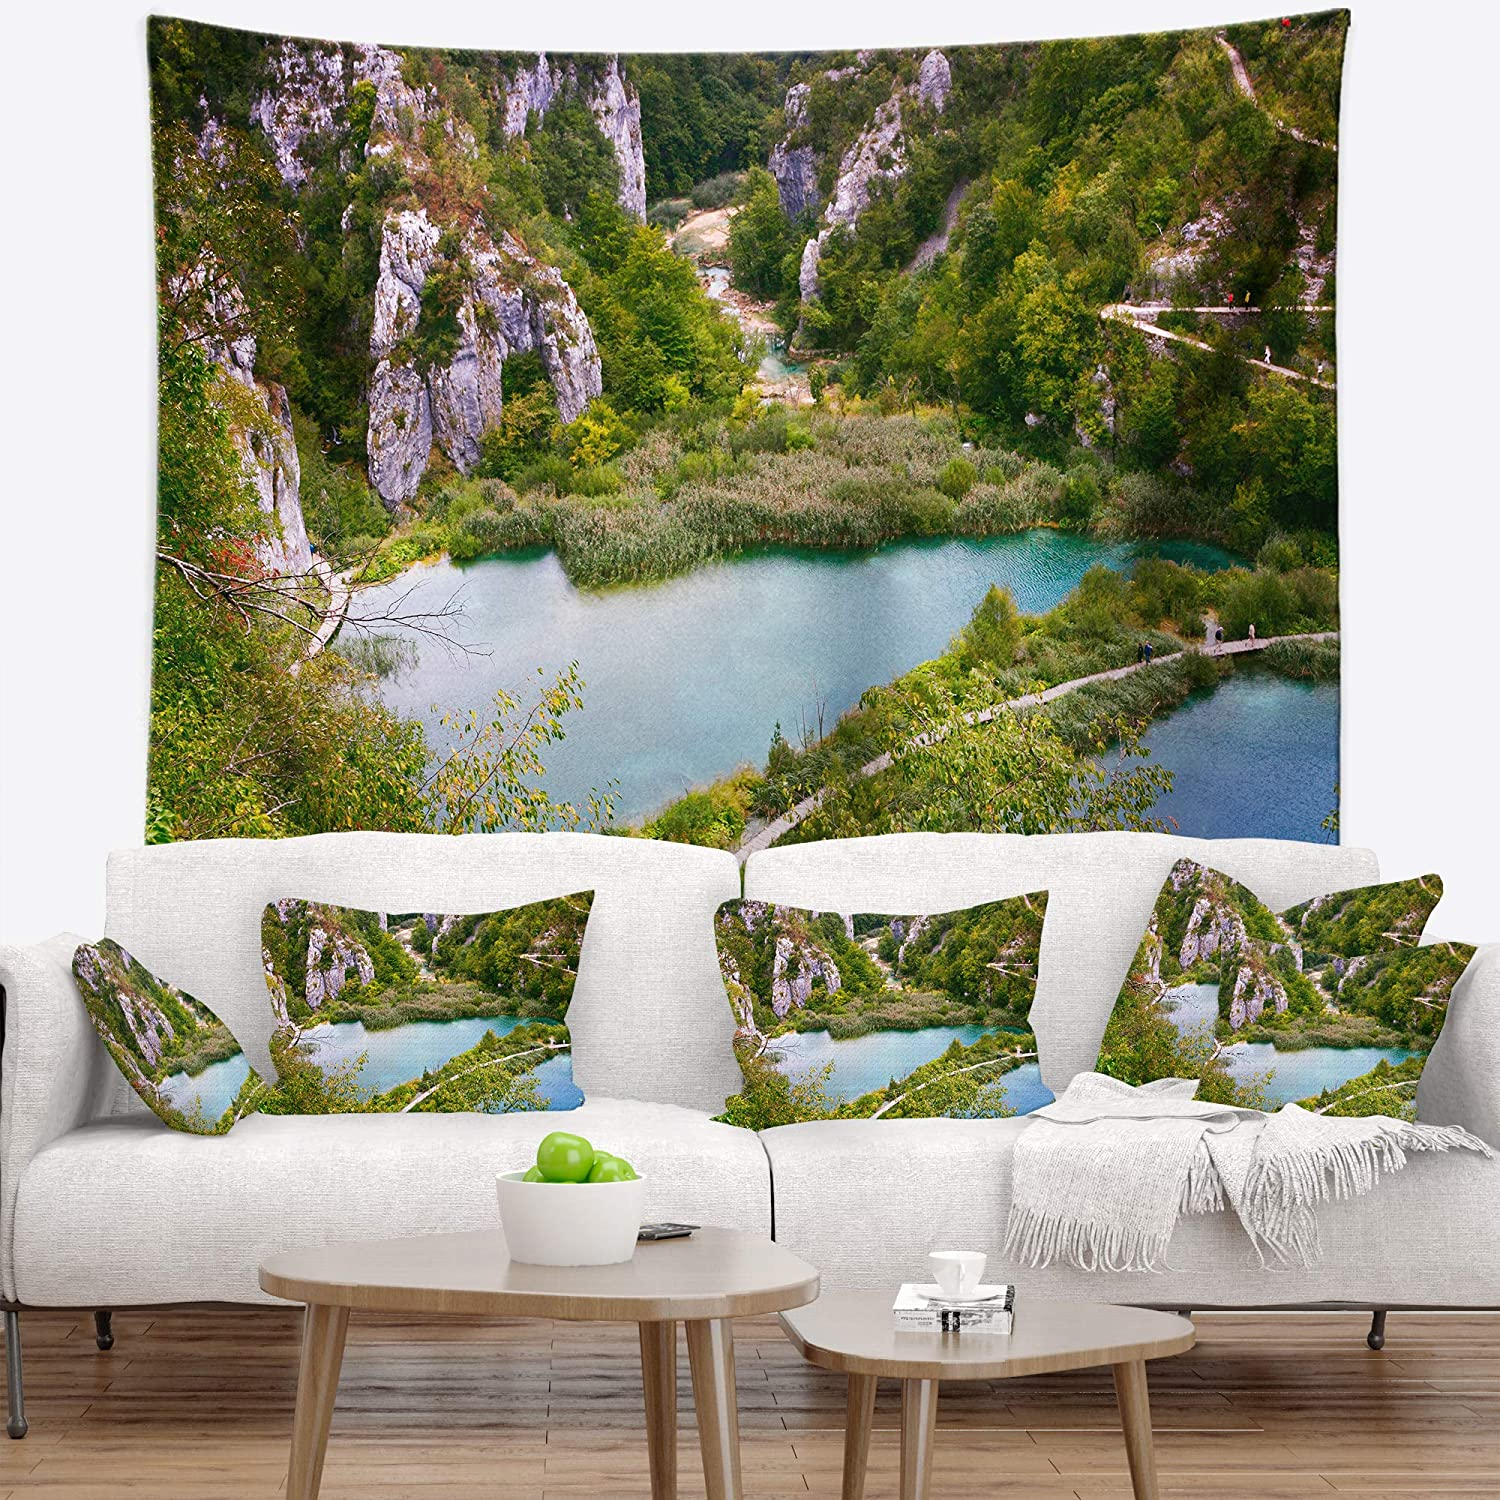 Created On Lightweight Polyester Fabric Designart Tap9069 39 32 Plitvice Lakes Long View Landscape Photo Blanket Décor Art For Home And Office Wall Tapestry Medium X 32 In 39 In